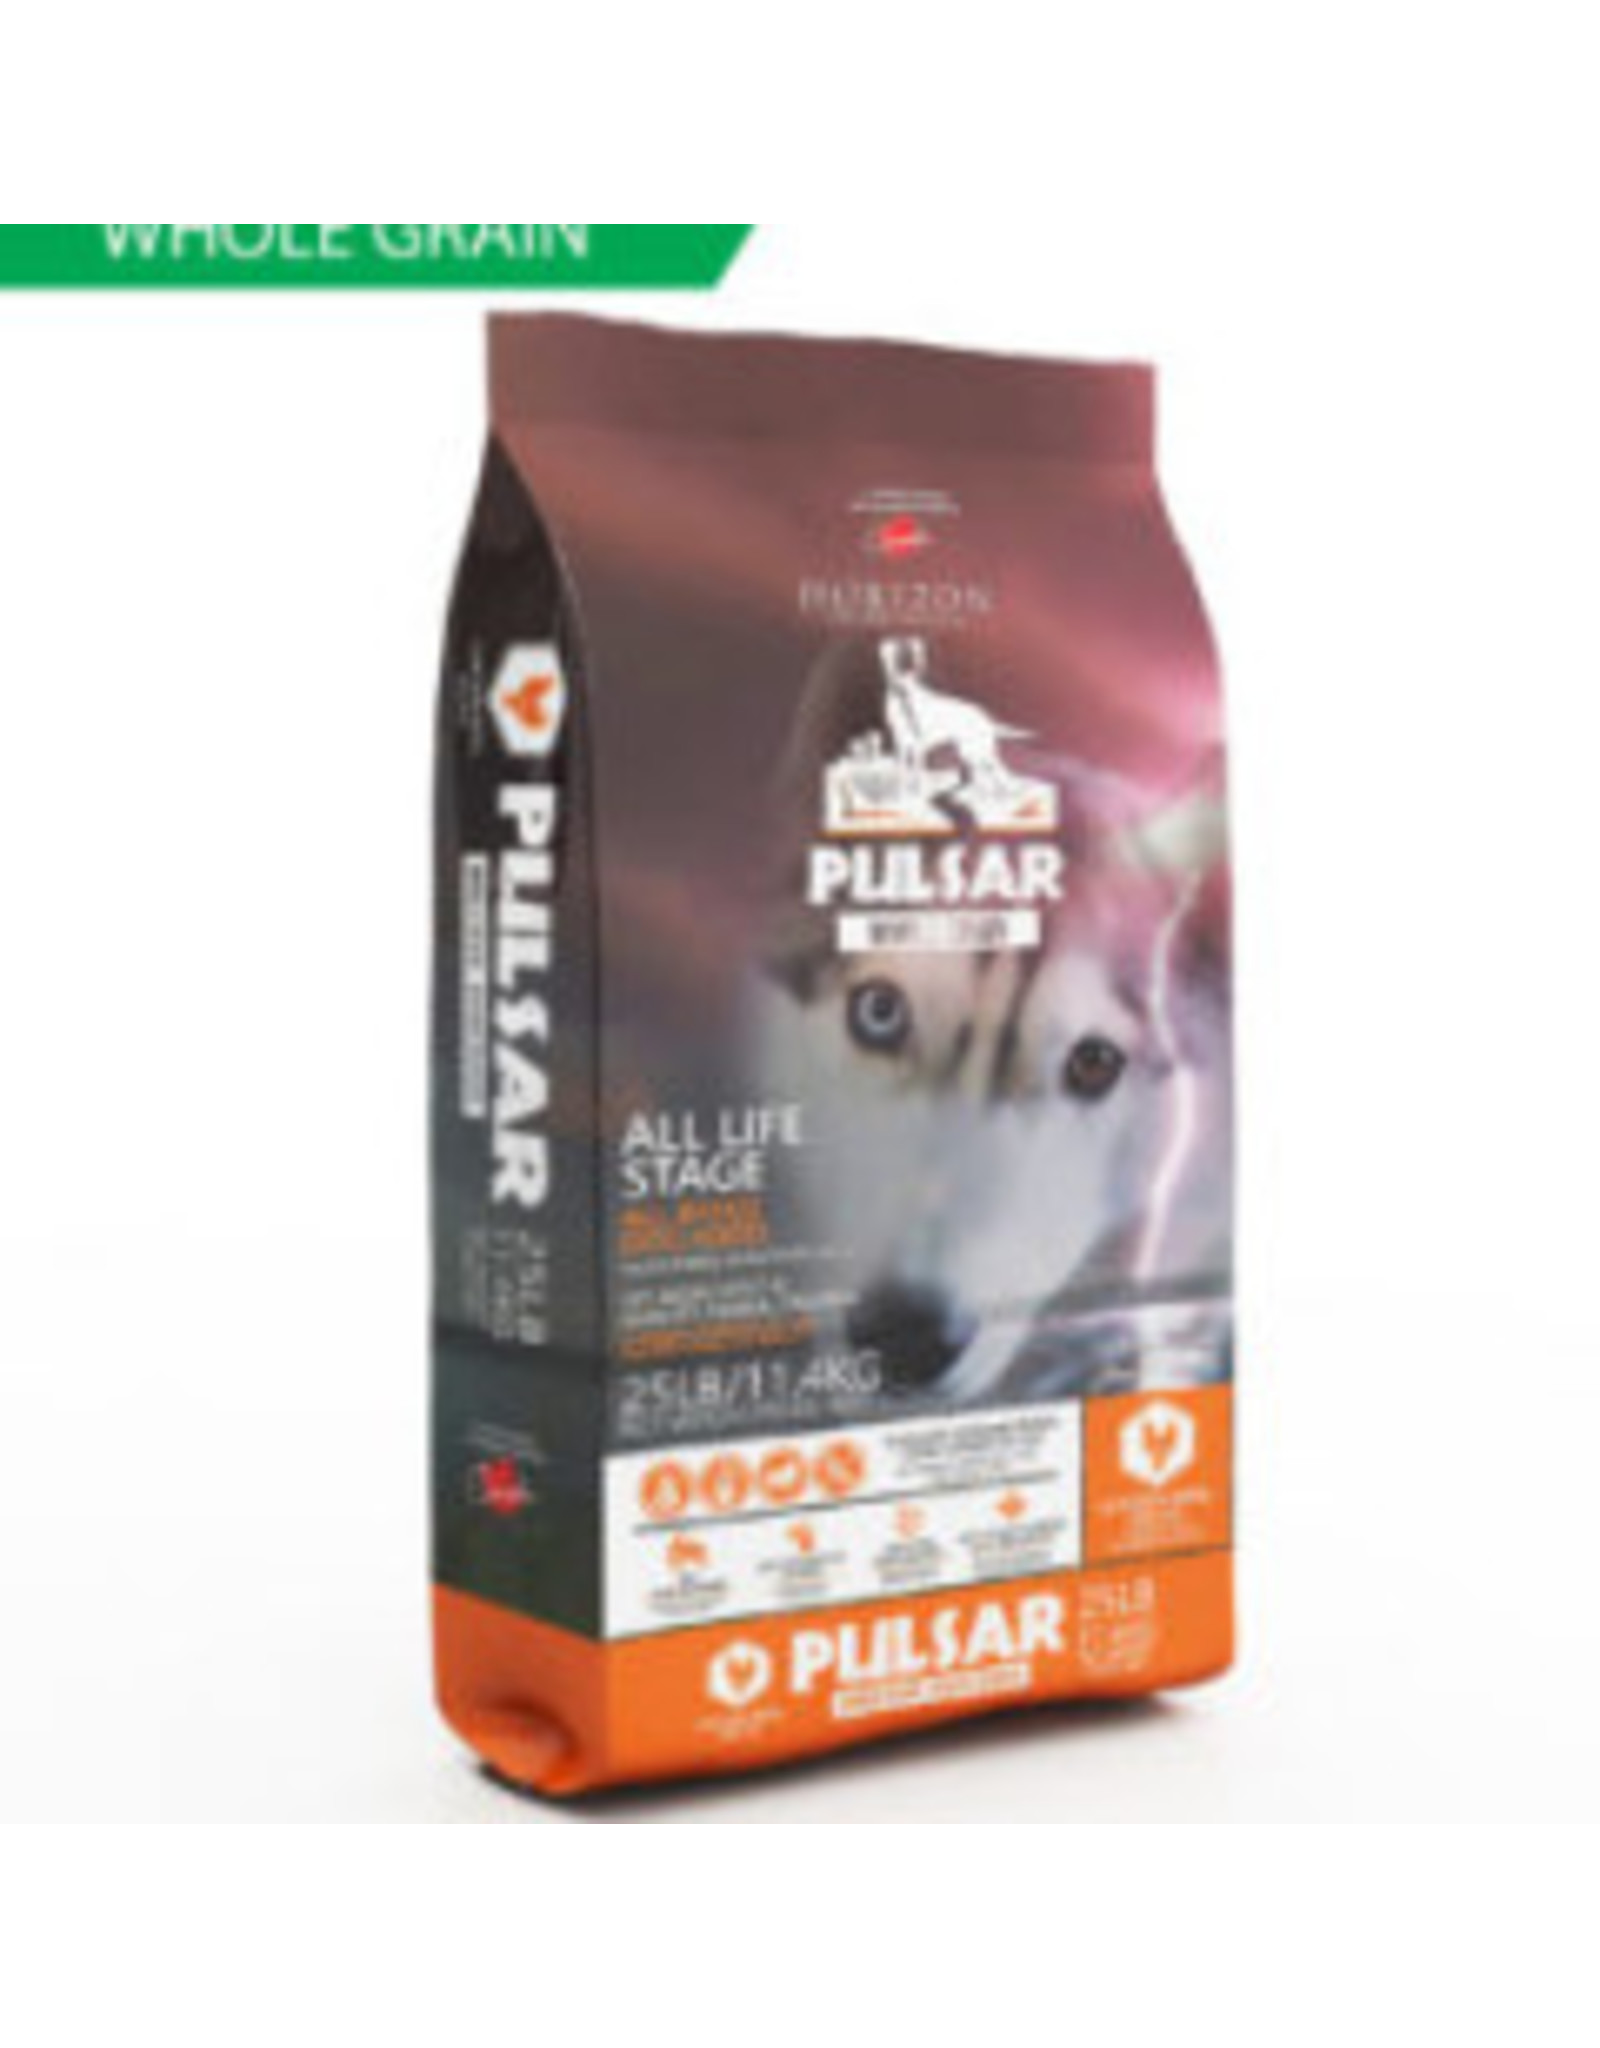 Horizon Pulsar Dog Food Chicken with Grains 4 kg